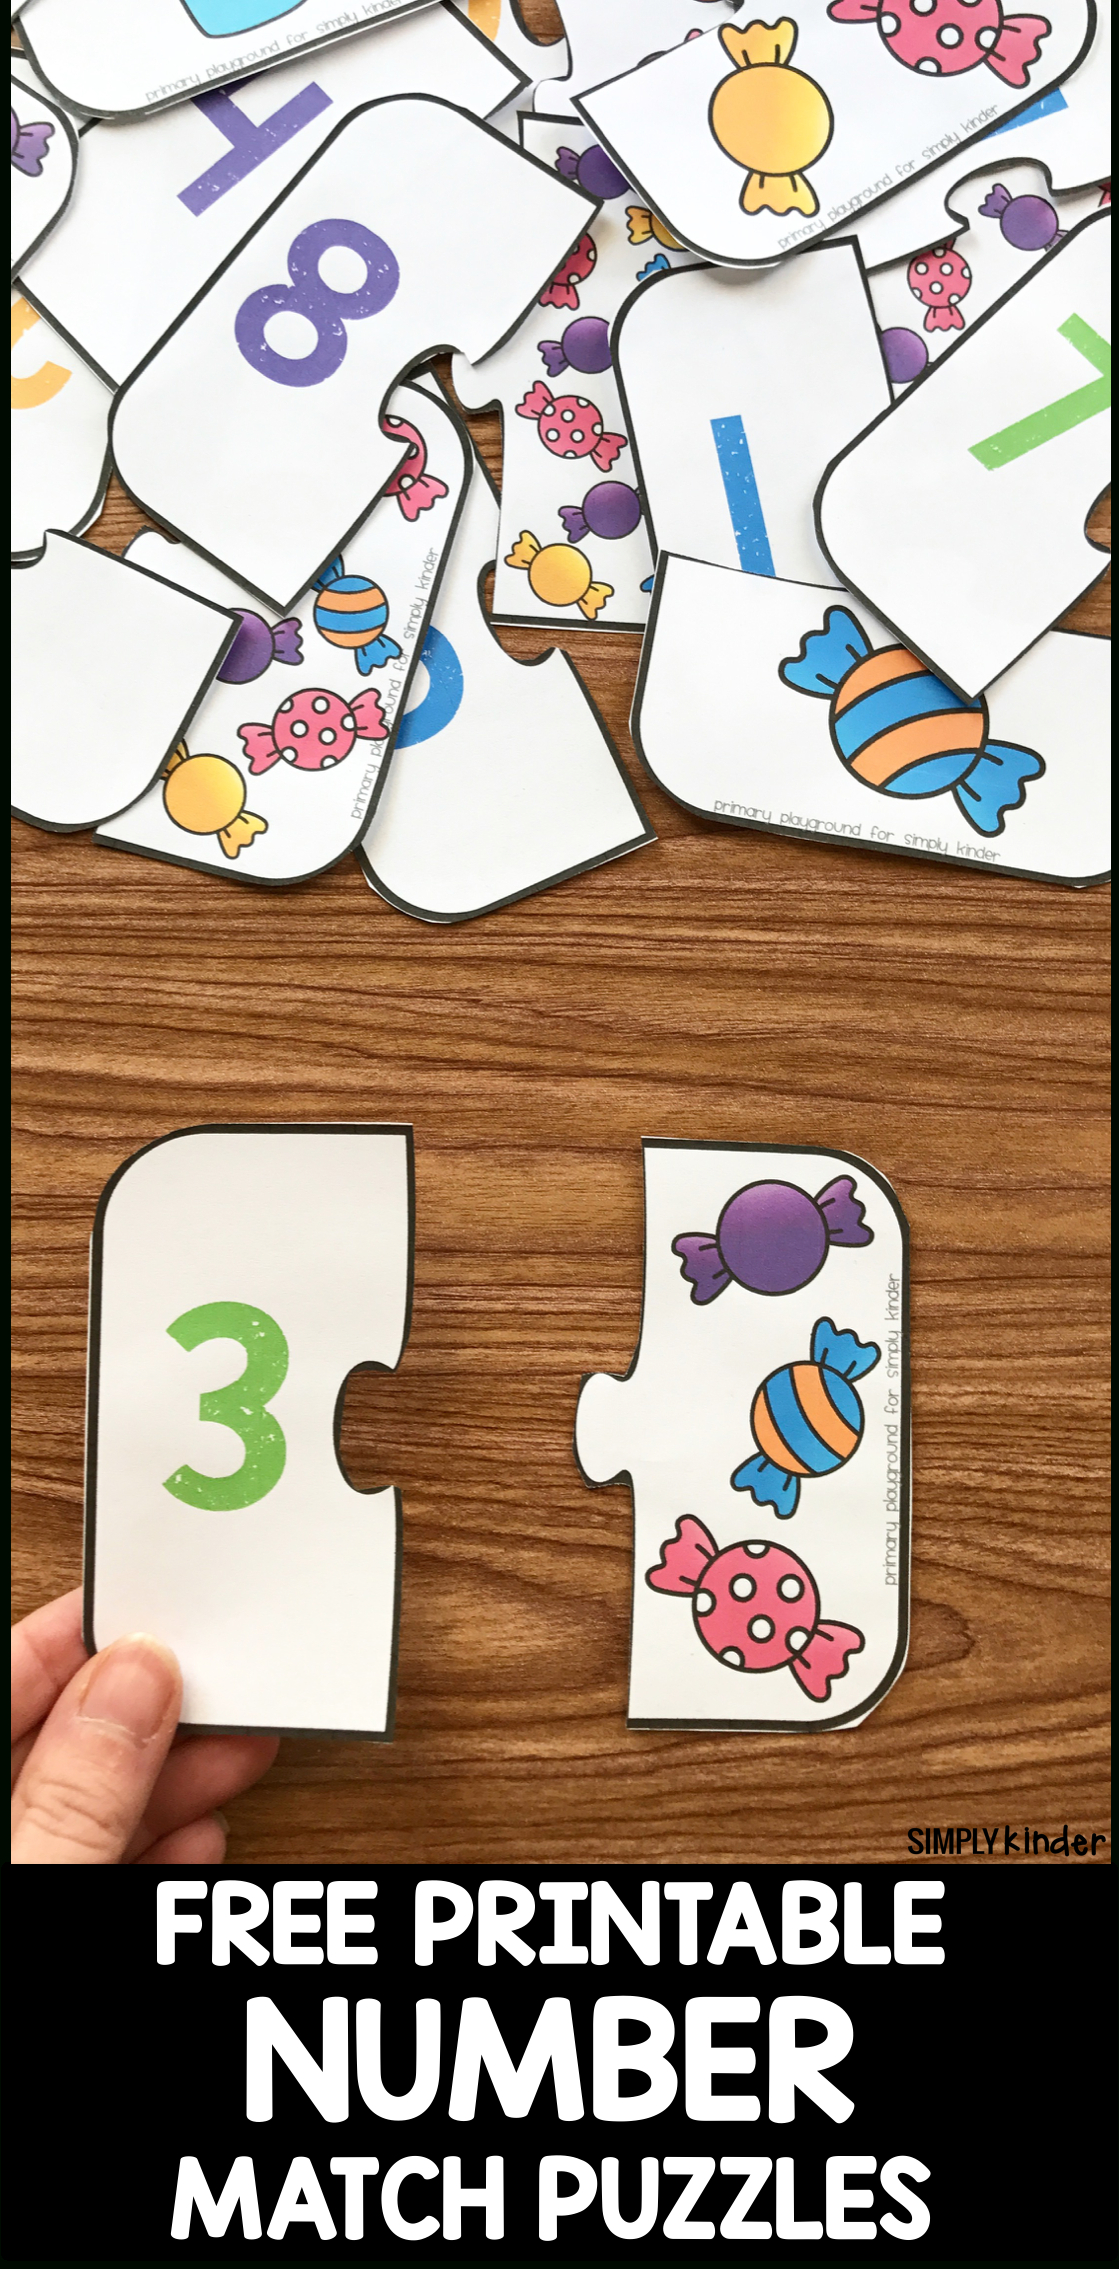 Free Printable Number Match Puzzles - Simply Kinder - Printable Puzzles For Toddlers